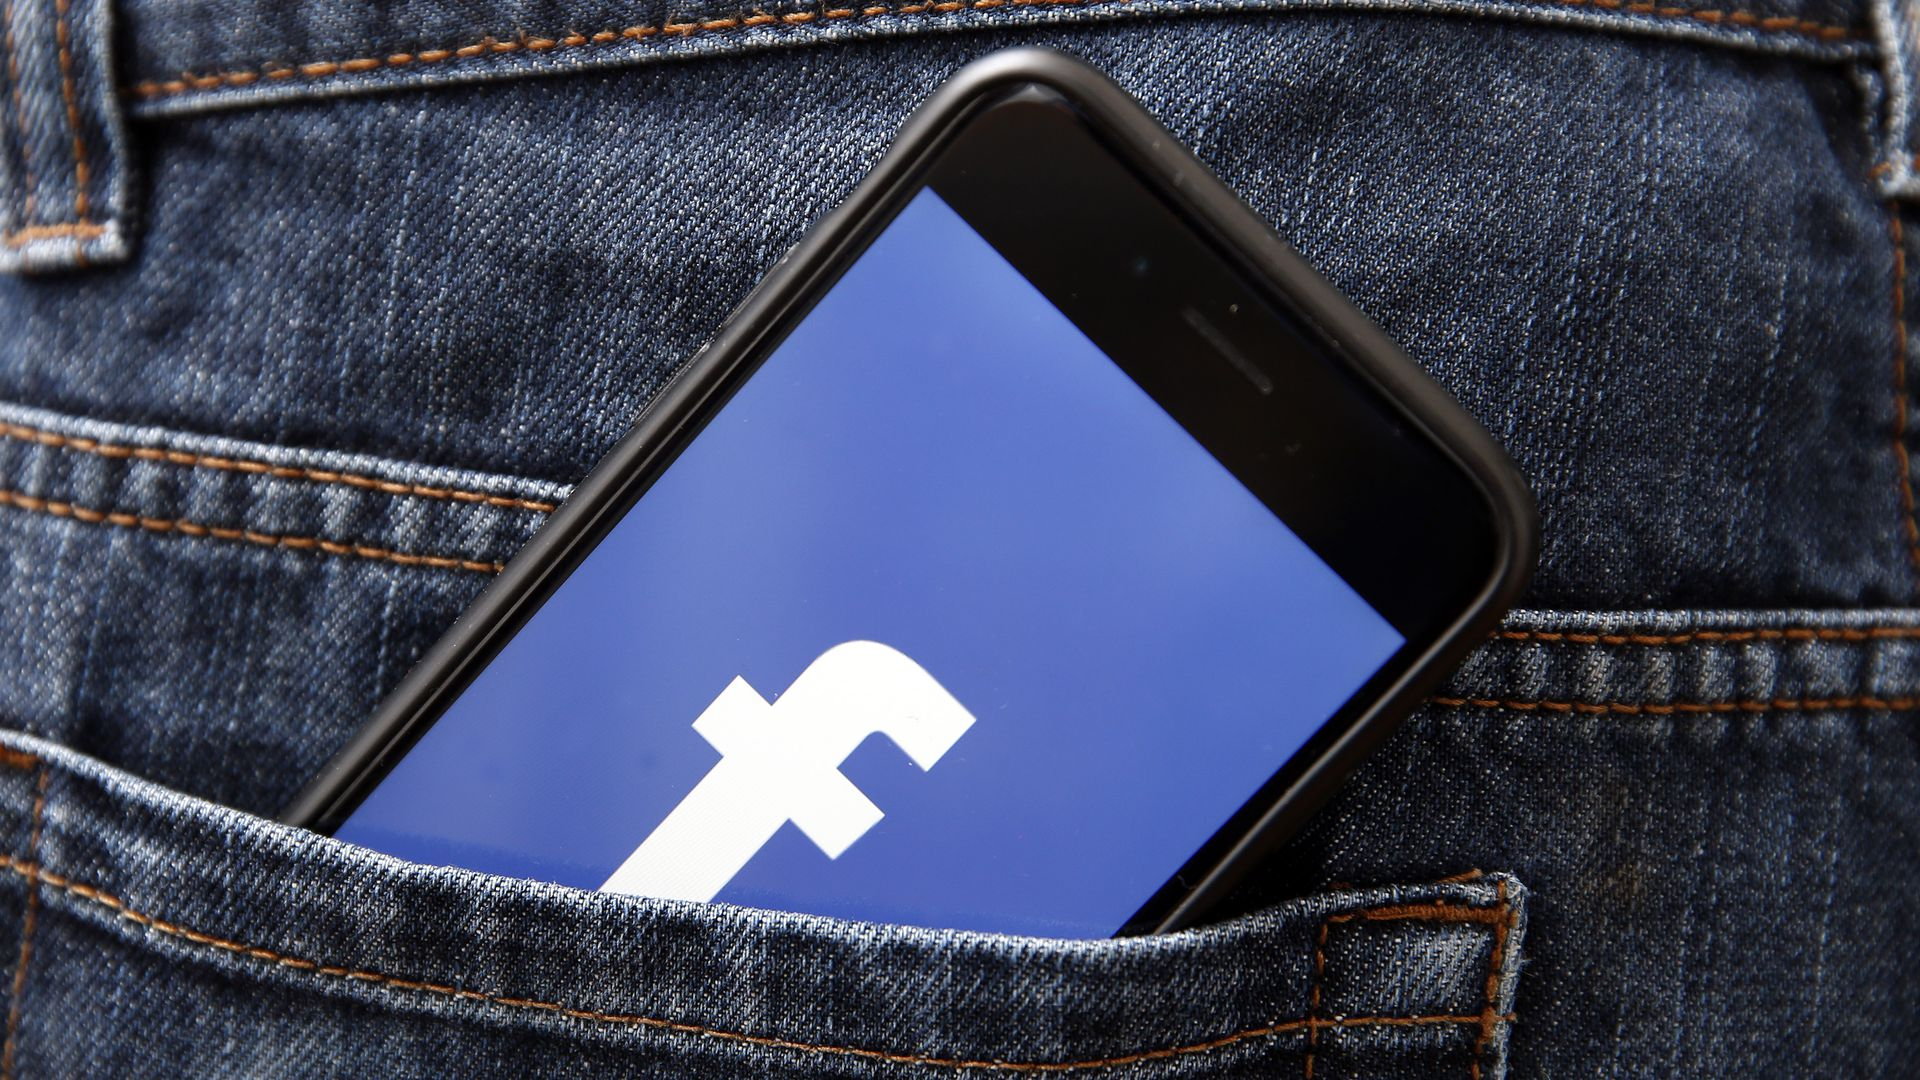 Facebook logo on an iPhone in a back jeans pocket